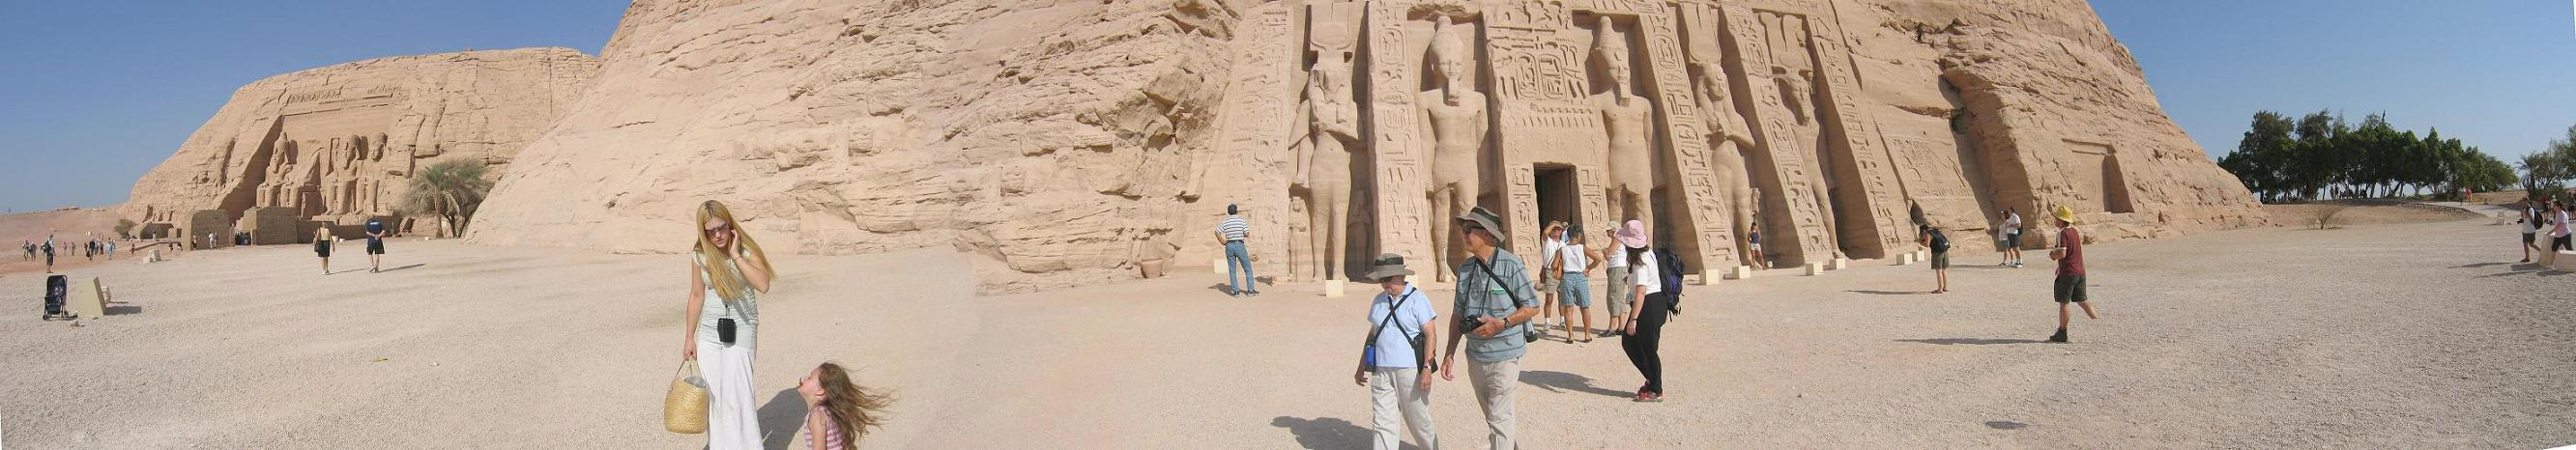 Egypt_abusimbel2